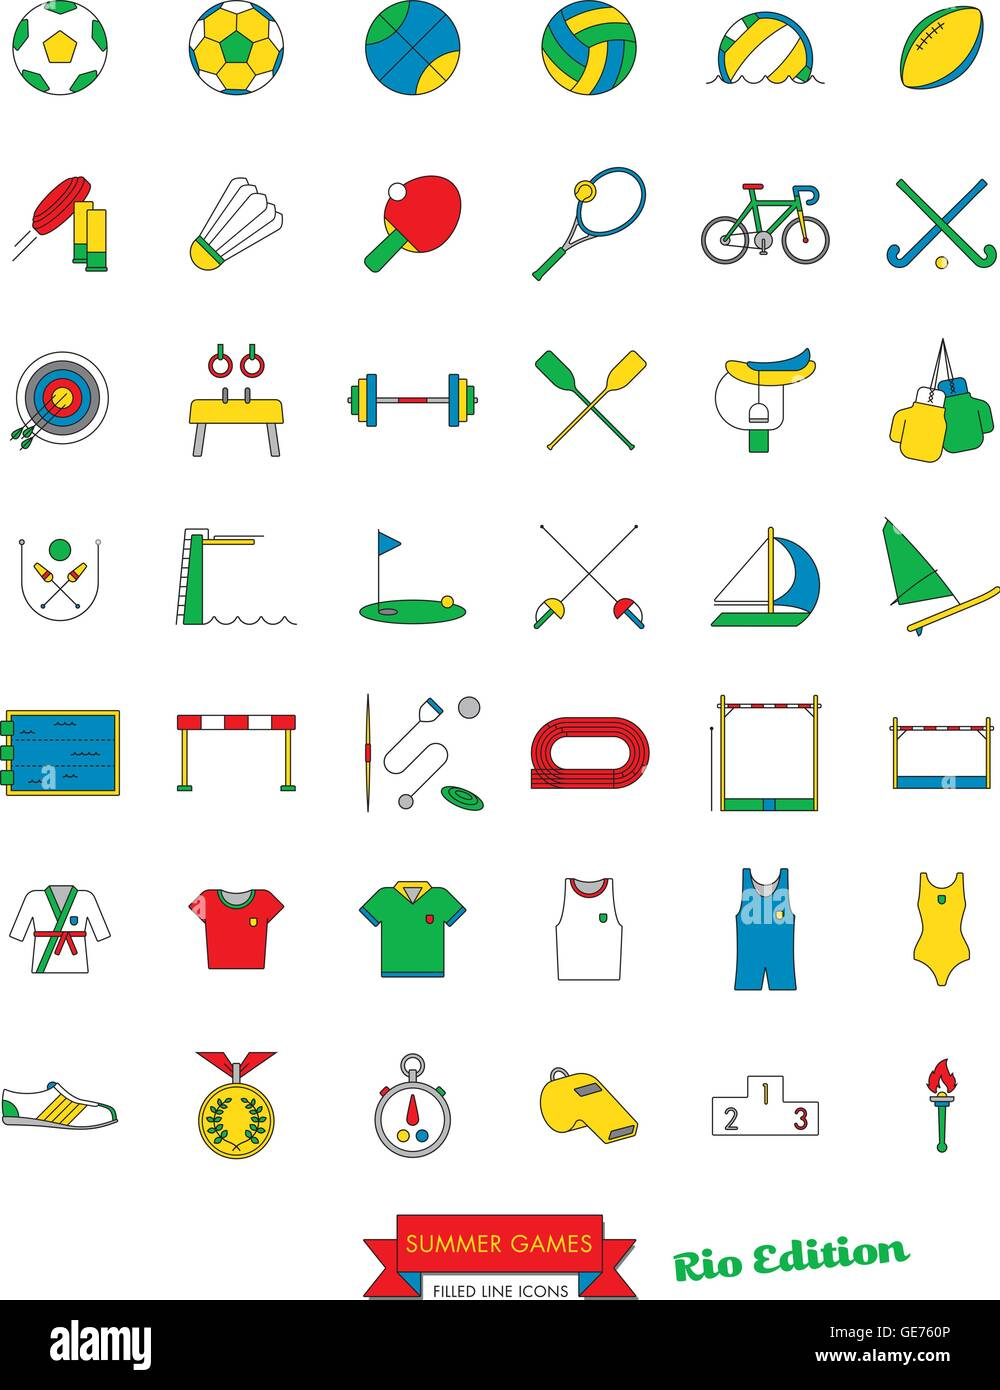 Set of 42 line icons related to Rio Summer Games Vector - Stock Vector